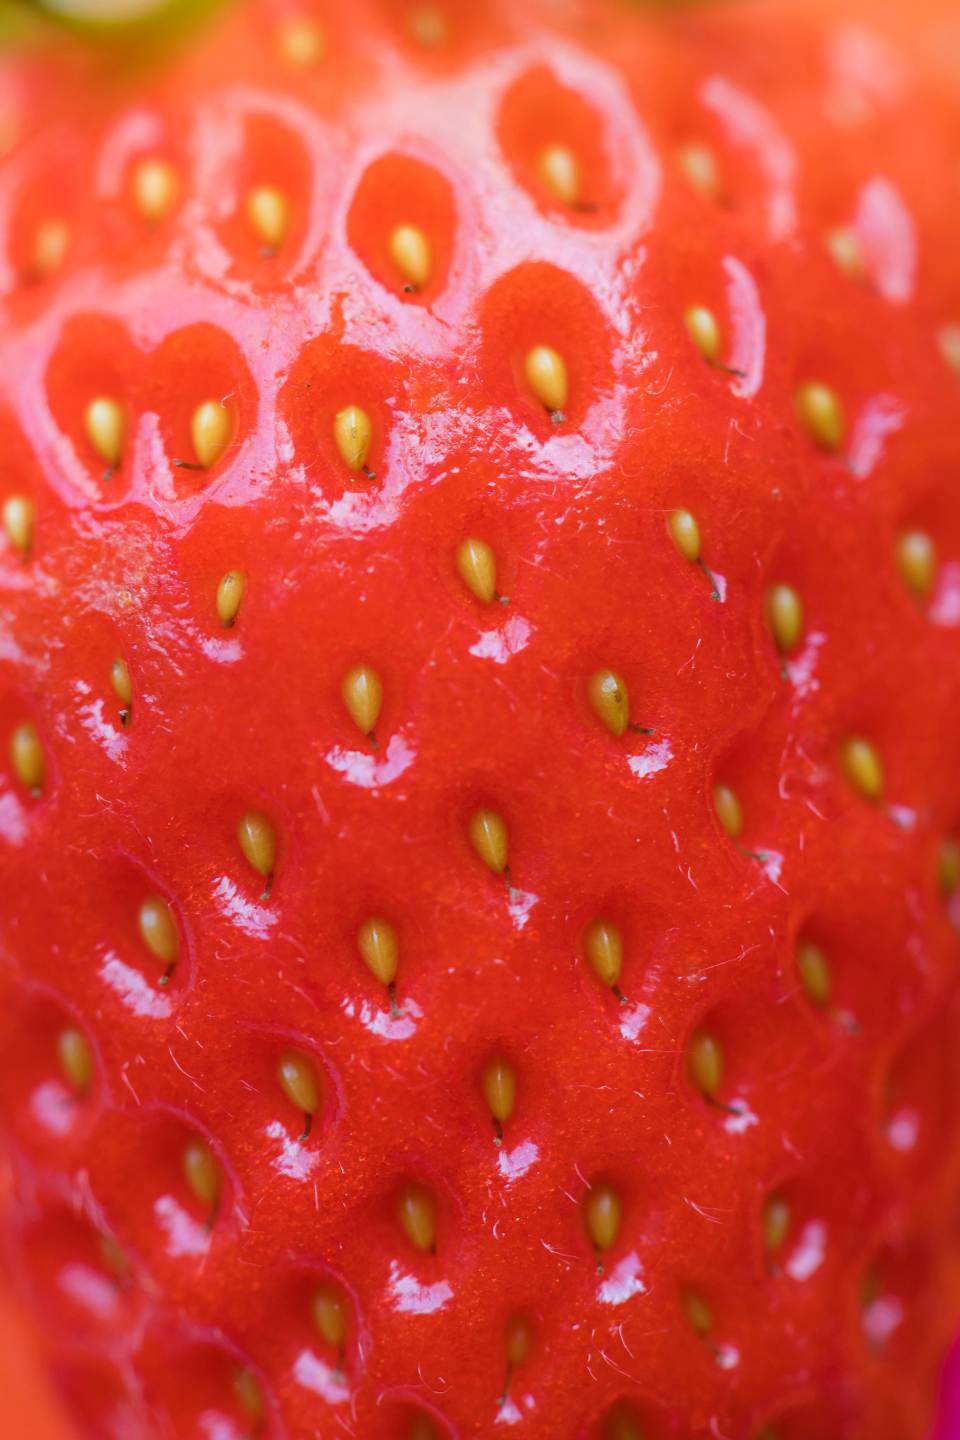 background berry closeup delicious dessert detox diet energy food fresh freshness fruit healthy ingredient juicy macro natural nutrition nutritious organic pattern raw red refreshment ripe season seasonal seed seeds strawberry sweet taste